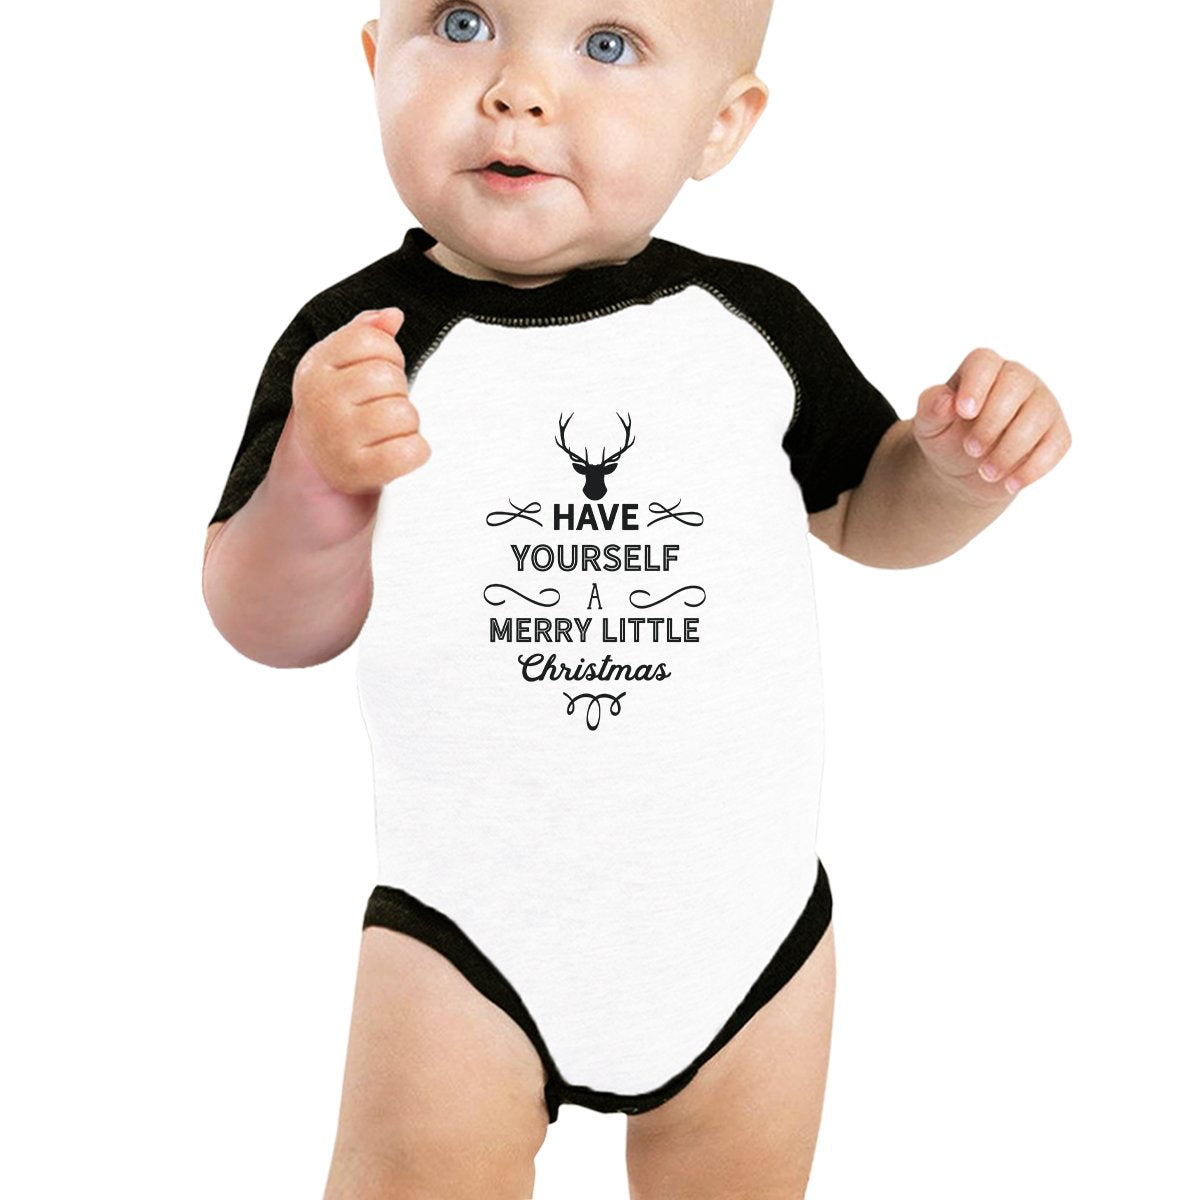 Have Yourself A Merry Little Christmas Baby Black And White Baseball Shirt